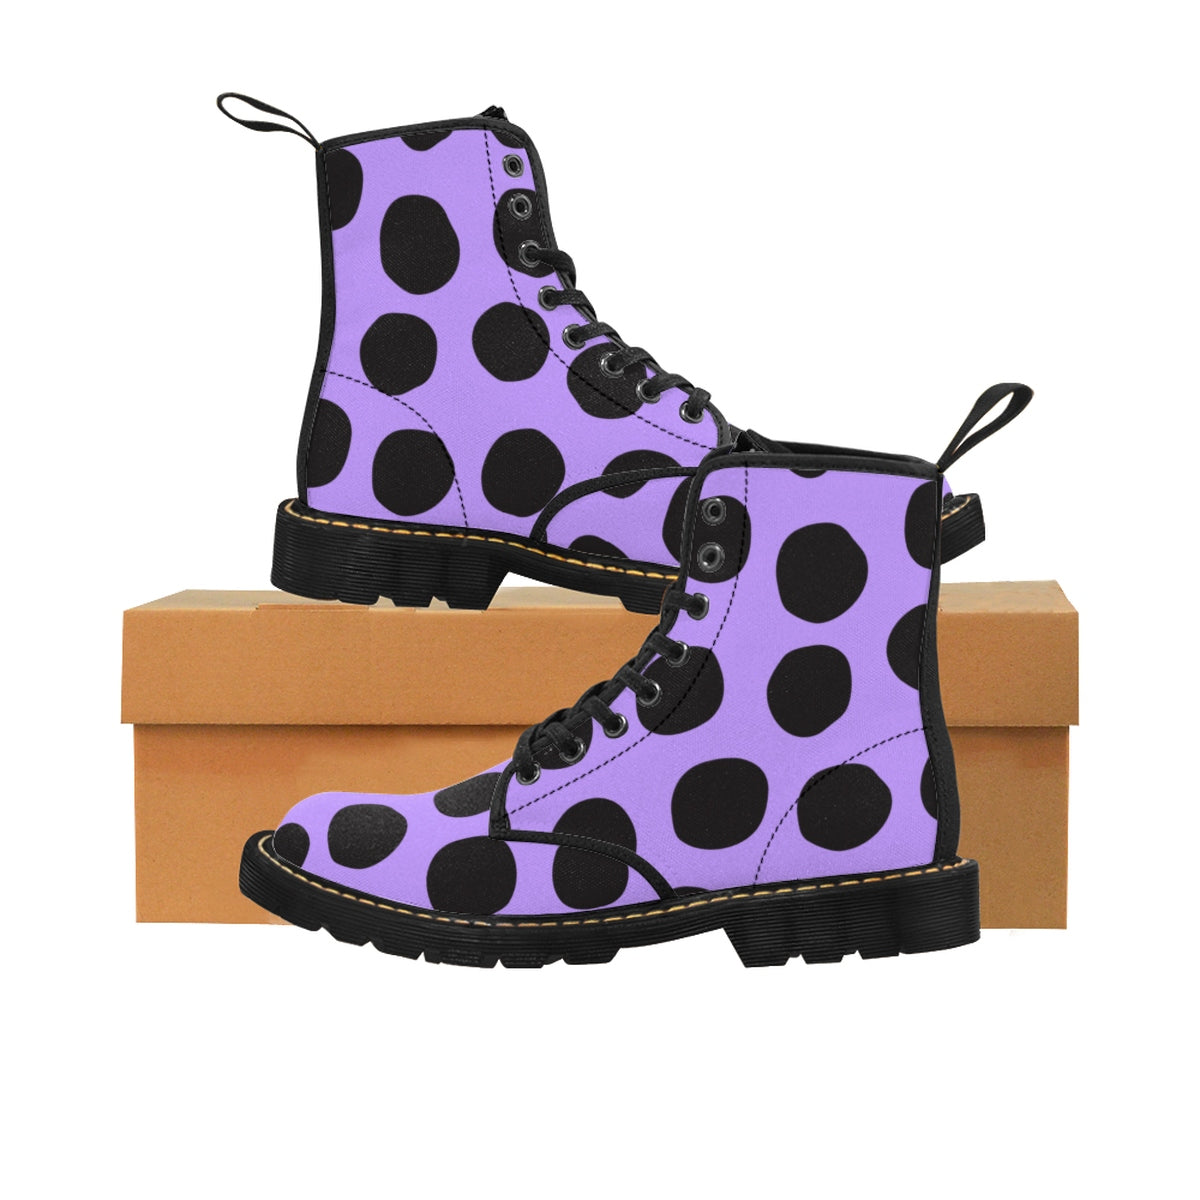 Ultraviolet Purple And Black Polka Dot Kids Martin Boots - Shoes